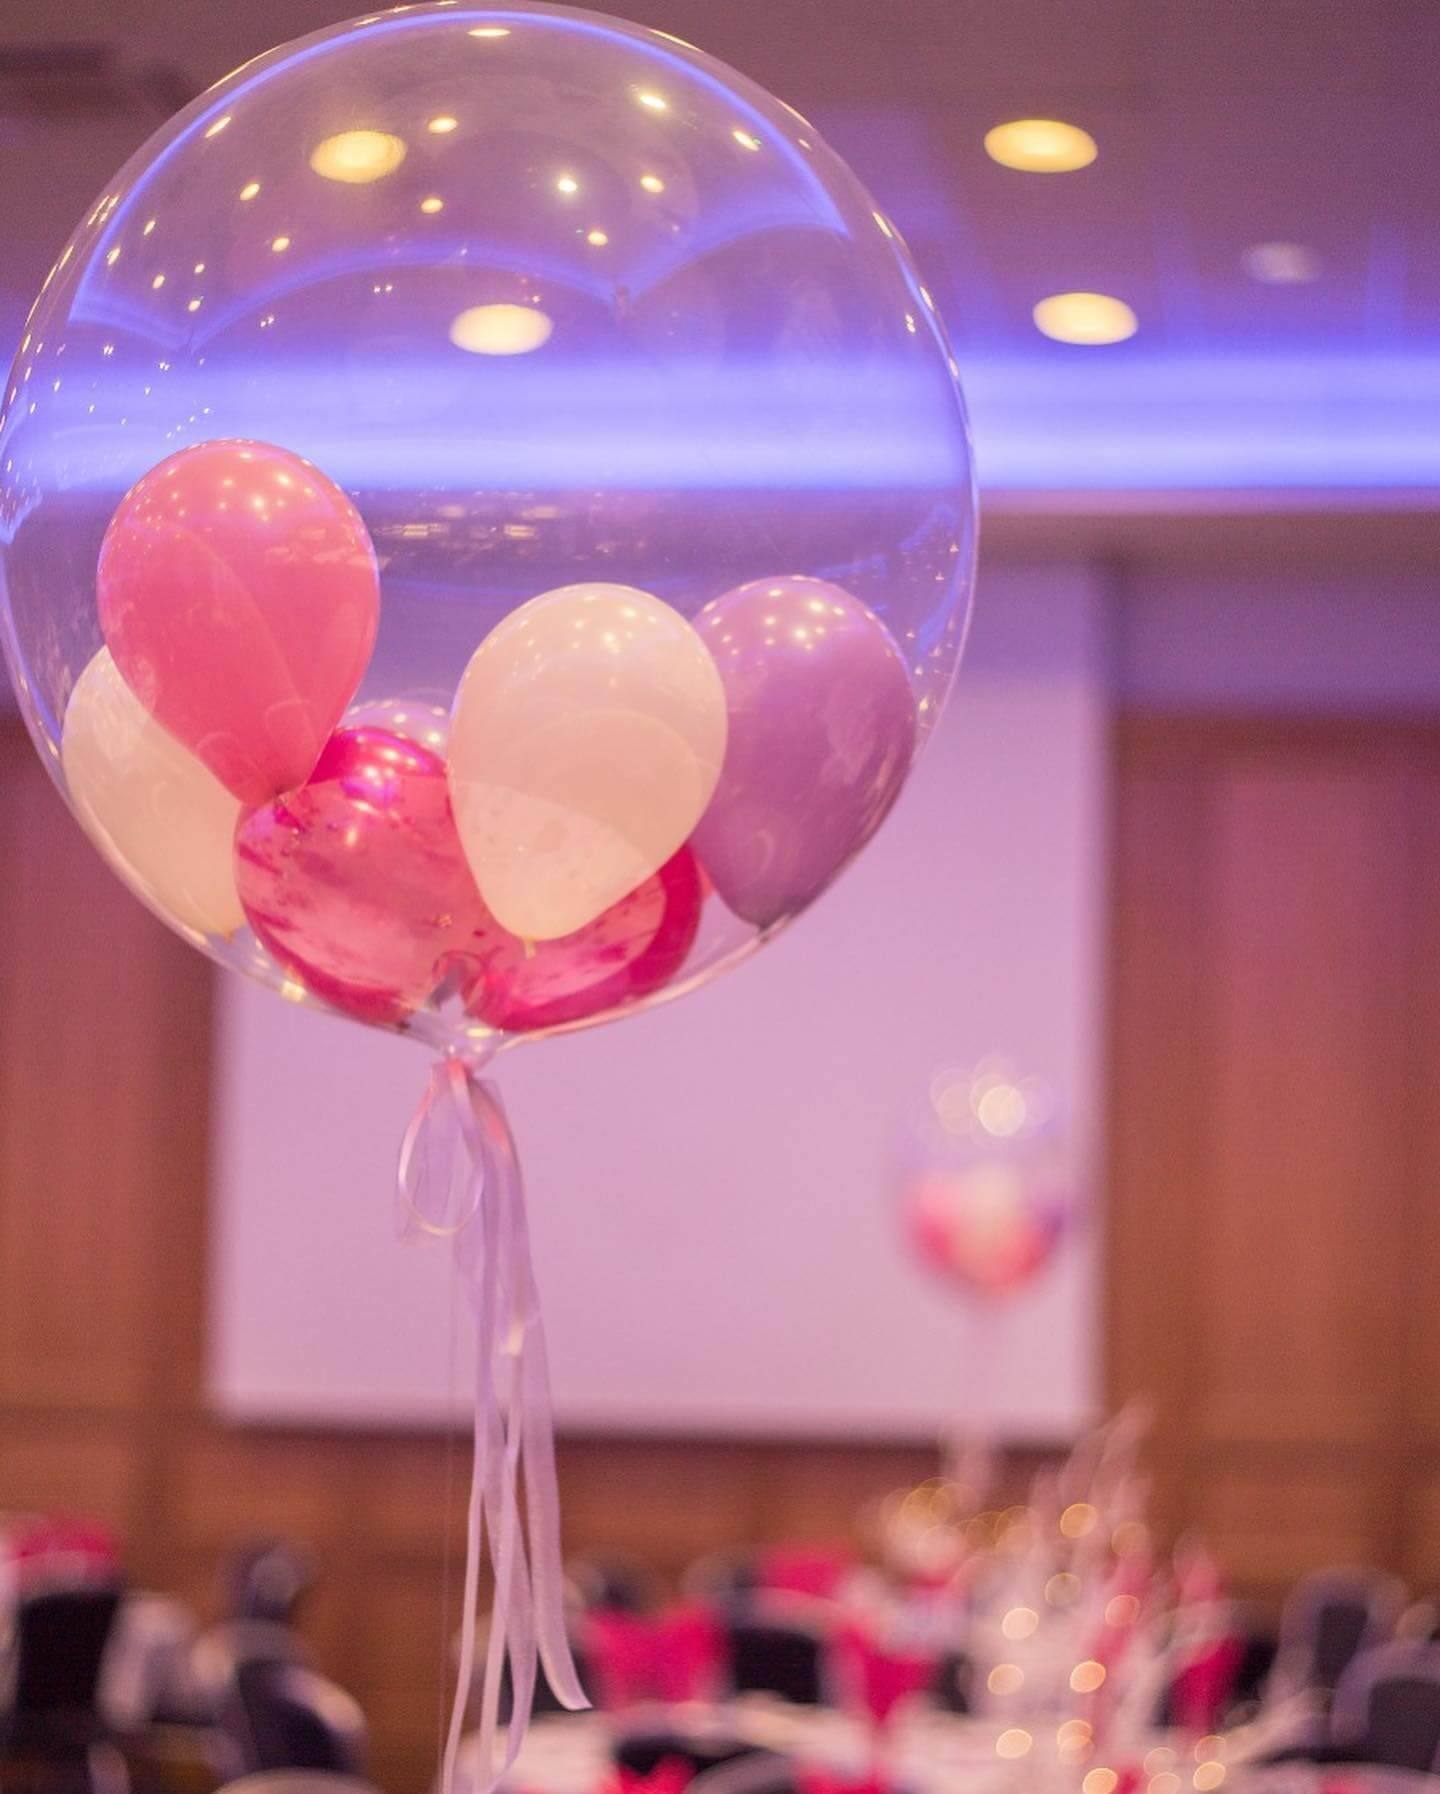 Balloons Inside of Balloon | The Mustcard